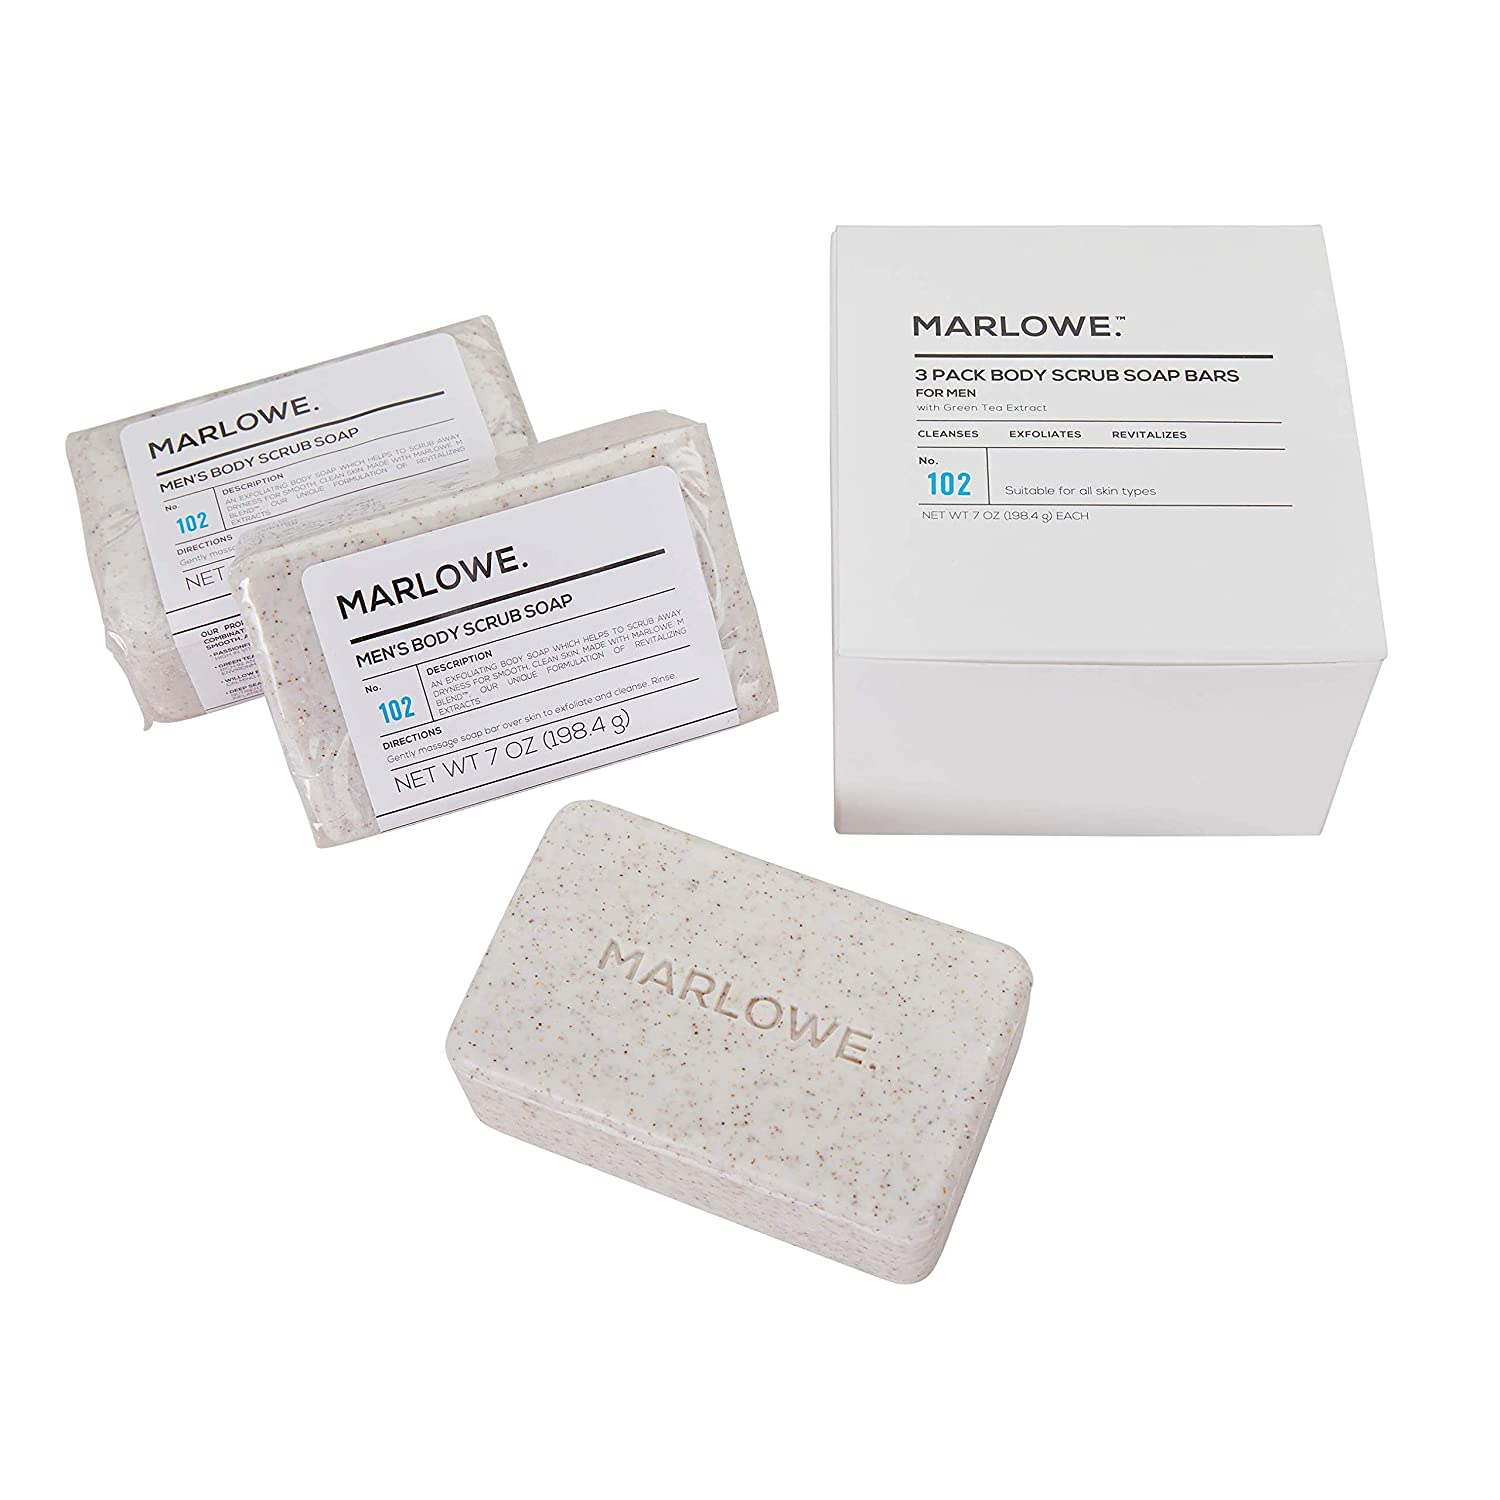 MARLOWE. No. 102 Men's Body Scrub Soap 7 oz (3 Bars) | Best Exfoliating Bar for Men | Made with Natural Ingredients | Green Tea Extract | Amazing Scent